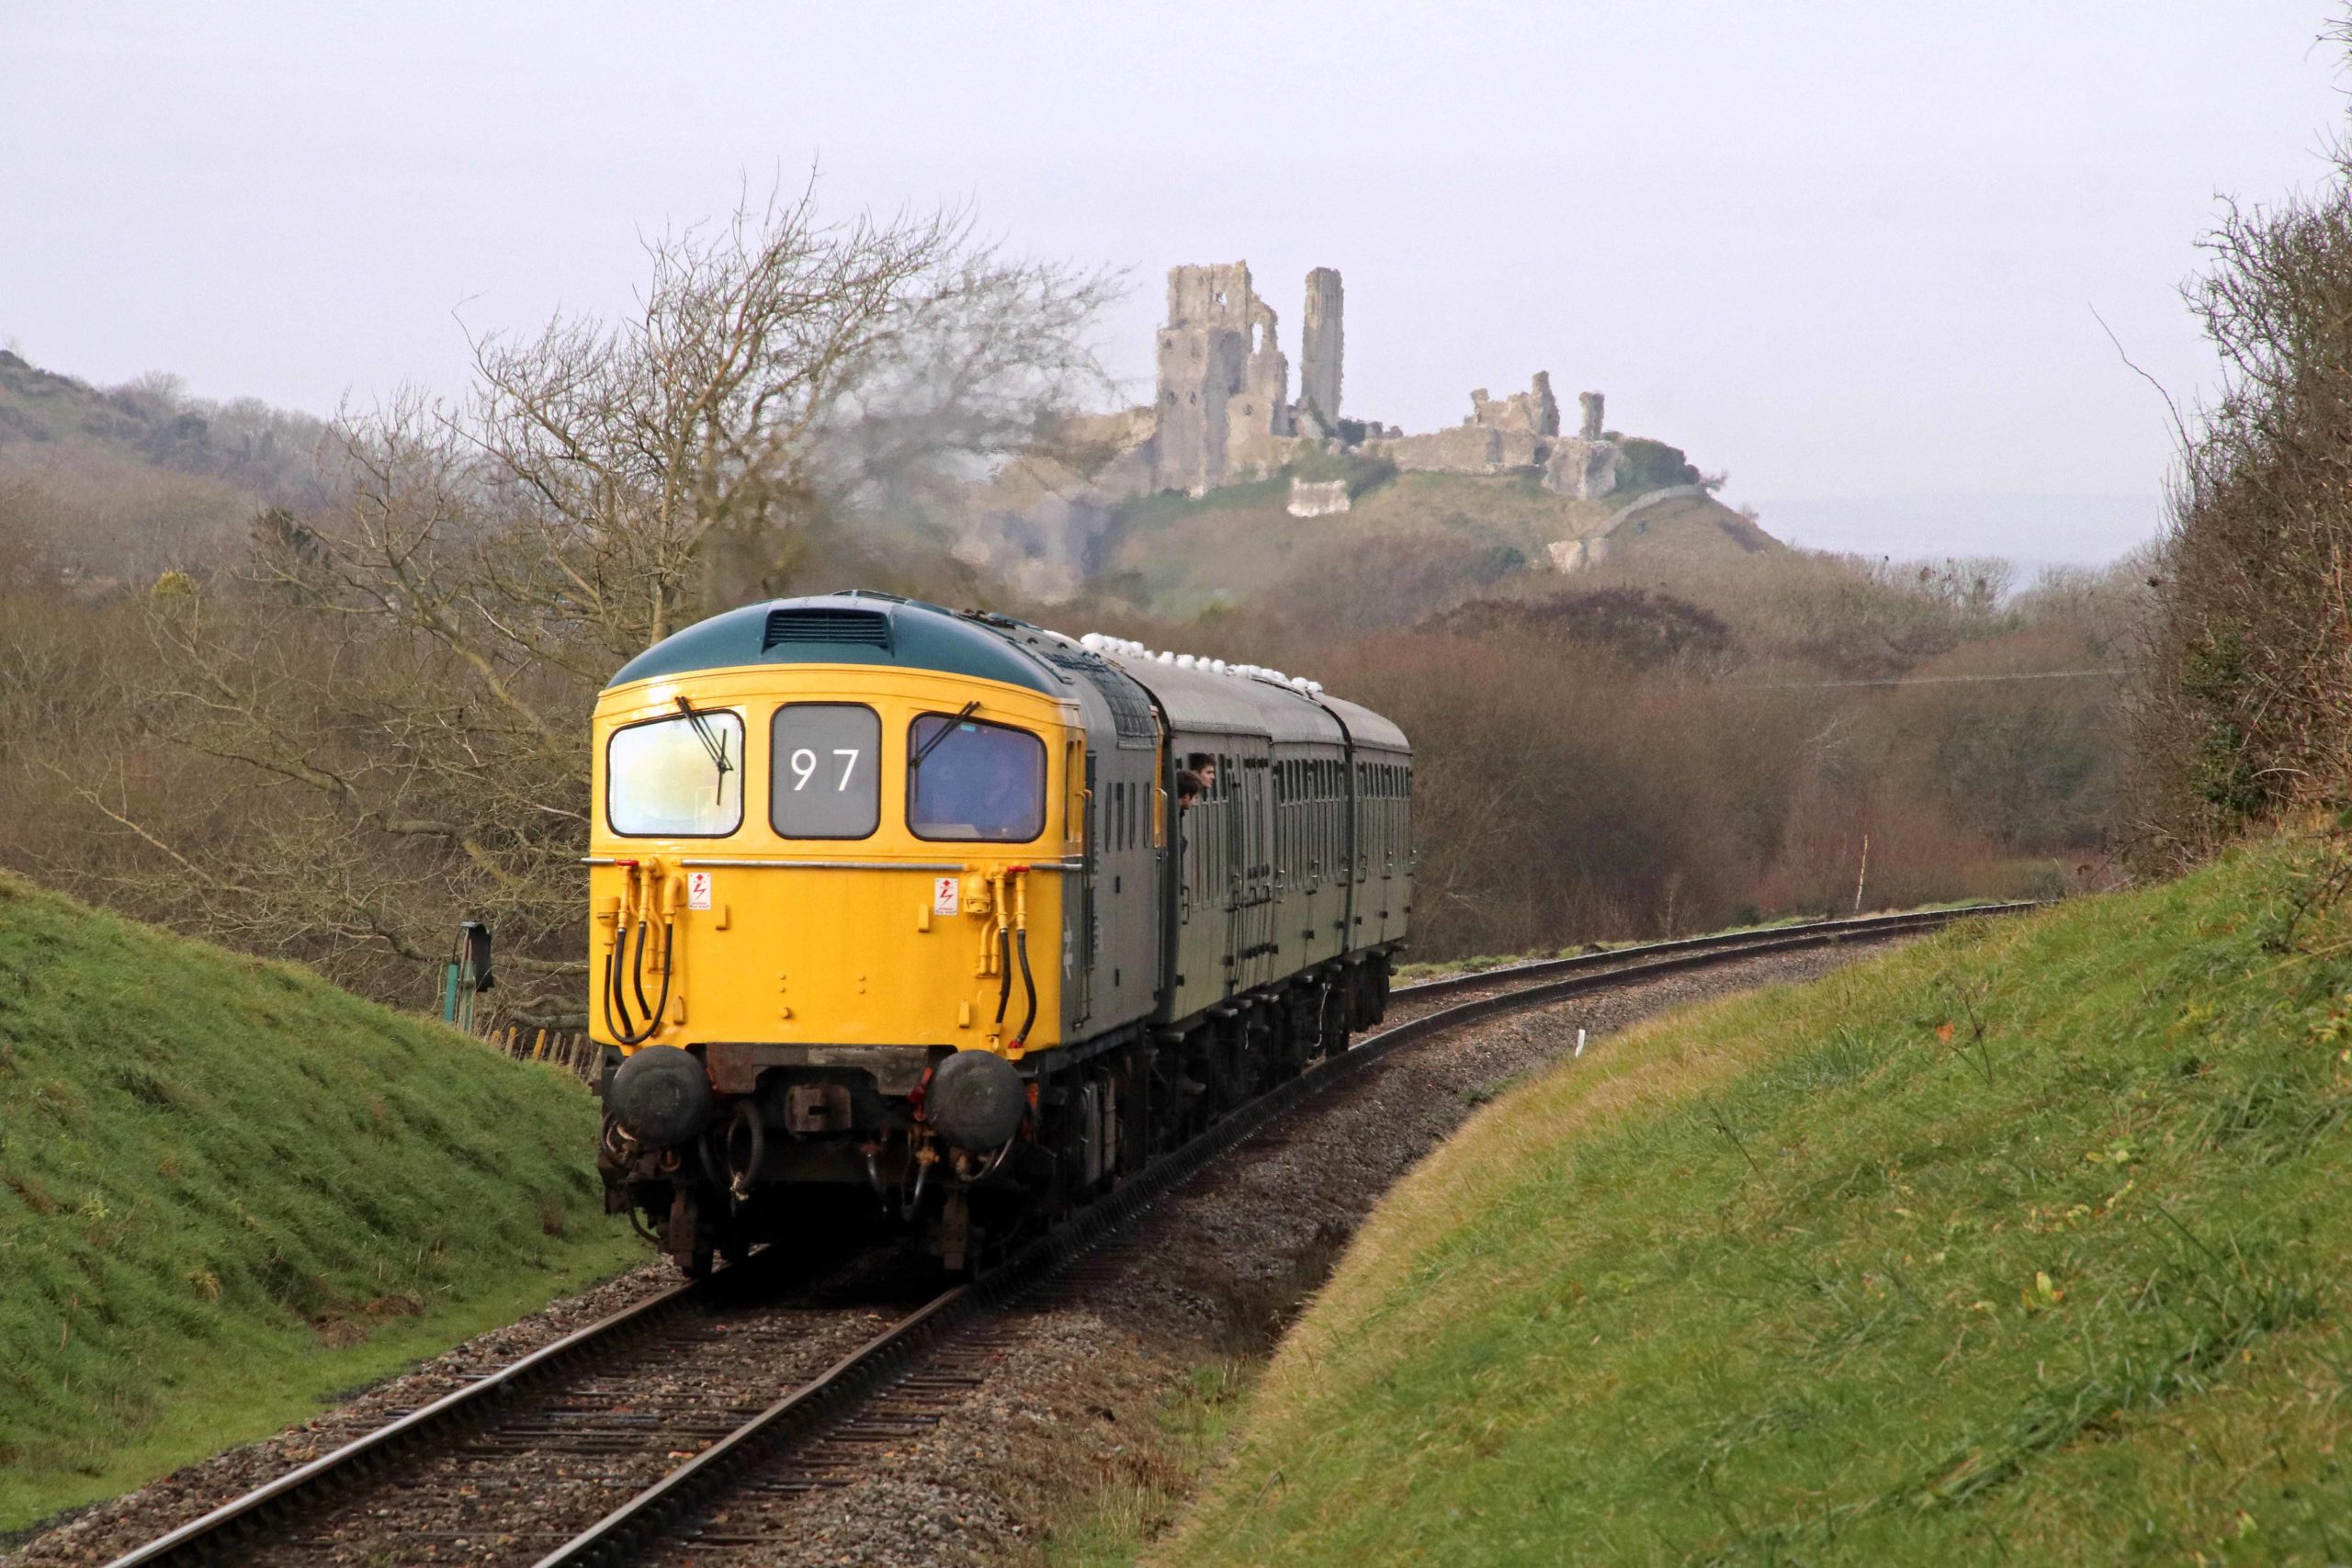 Class 33 No. 33 111 on Swanage Railway by Corfe Castle